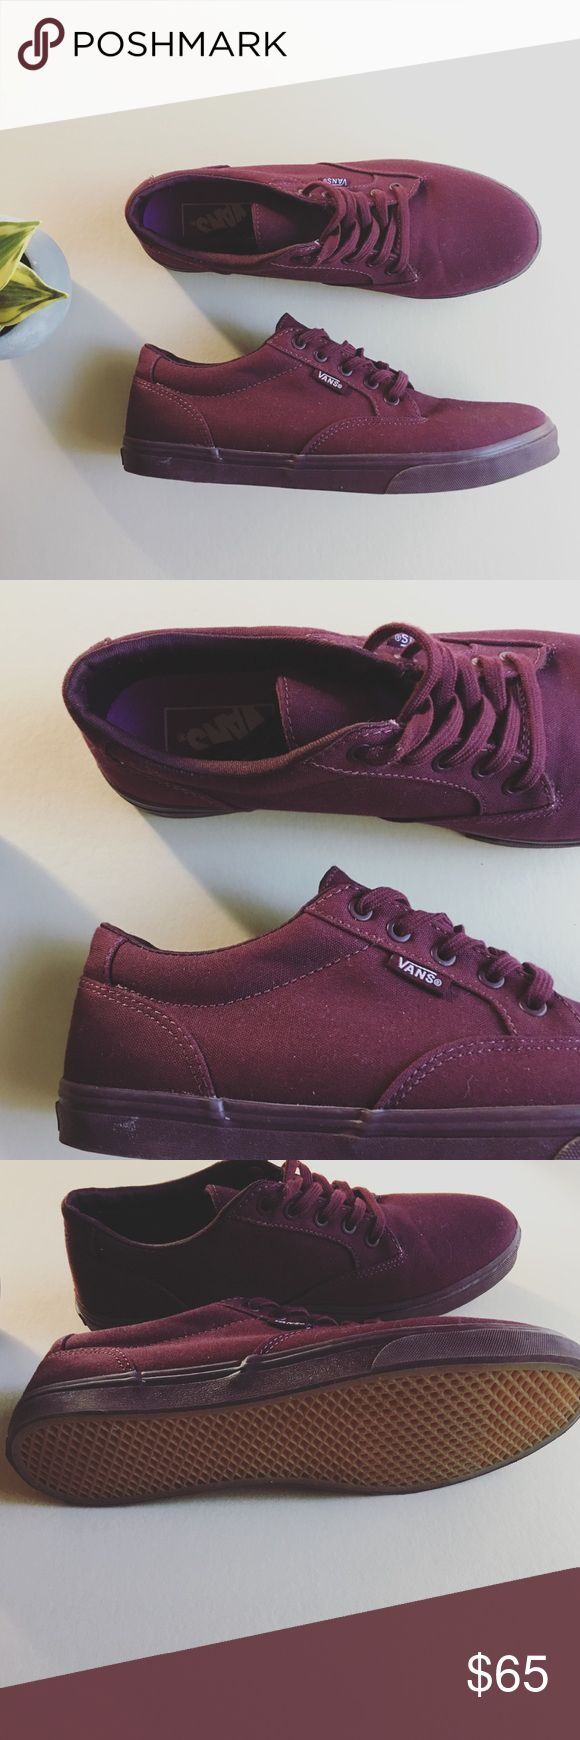 VANS | Authentic Skate Shoes VANS | Authentic Skate Shoes ⚡︎ DETAILS:  ⌁ BRAND: vans ⌁ FEATURES: classic vans canvas upper, rubber sole and lace closure; special edition ⌁ SIZE: 8 ⌁ COLOR: burgundy monochrome  ⌁ CONDITION: nwot ⌁ CONTENT: ✗ ⌁ CARE: ✗ 